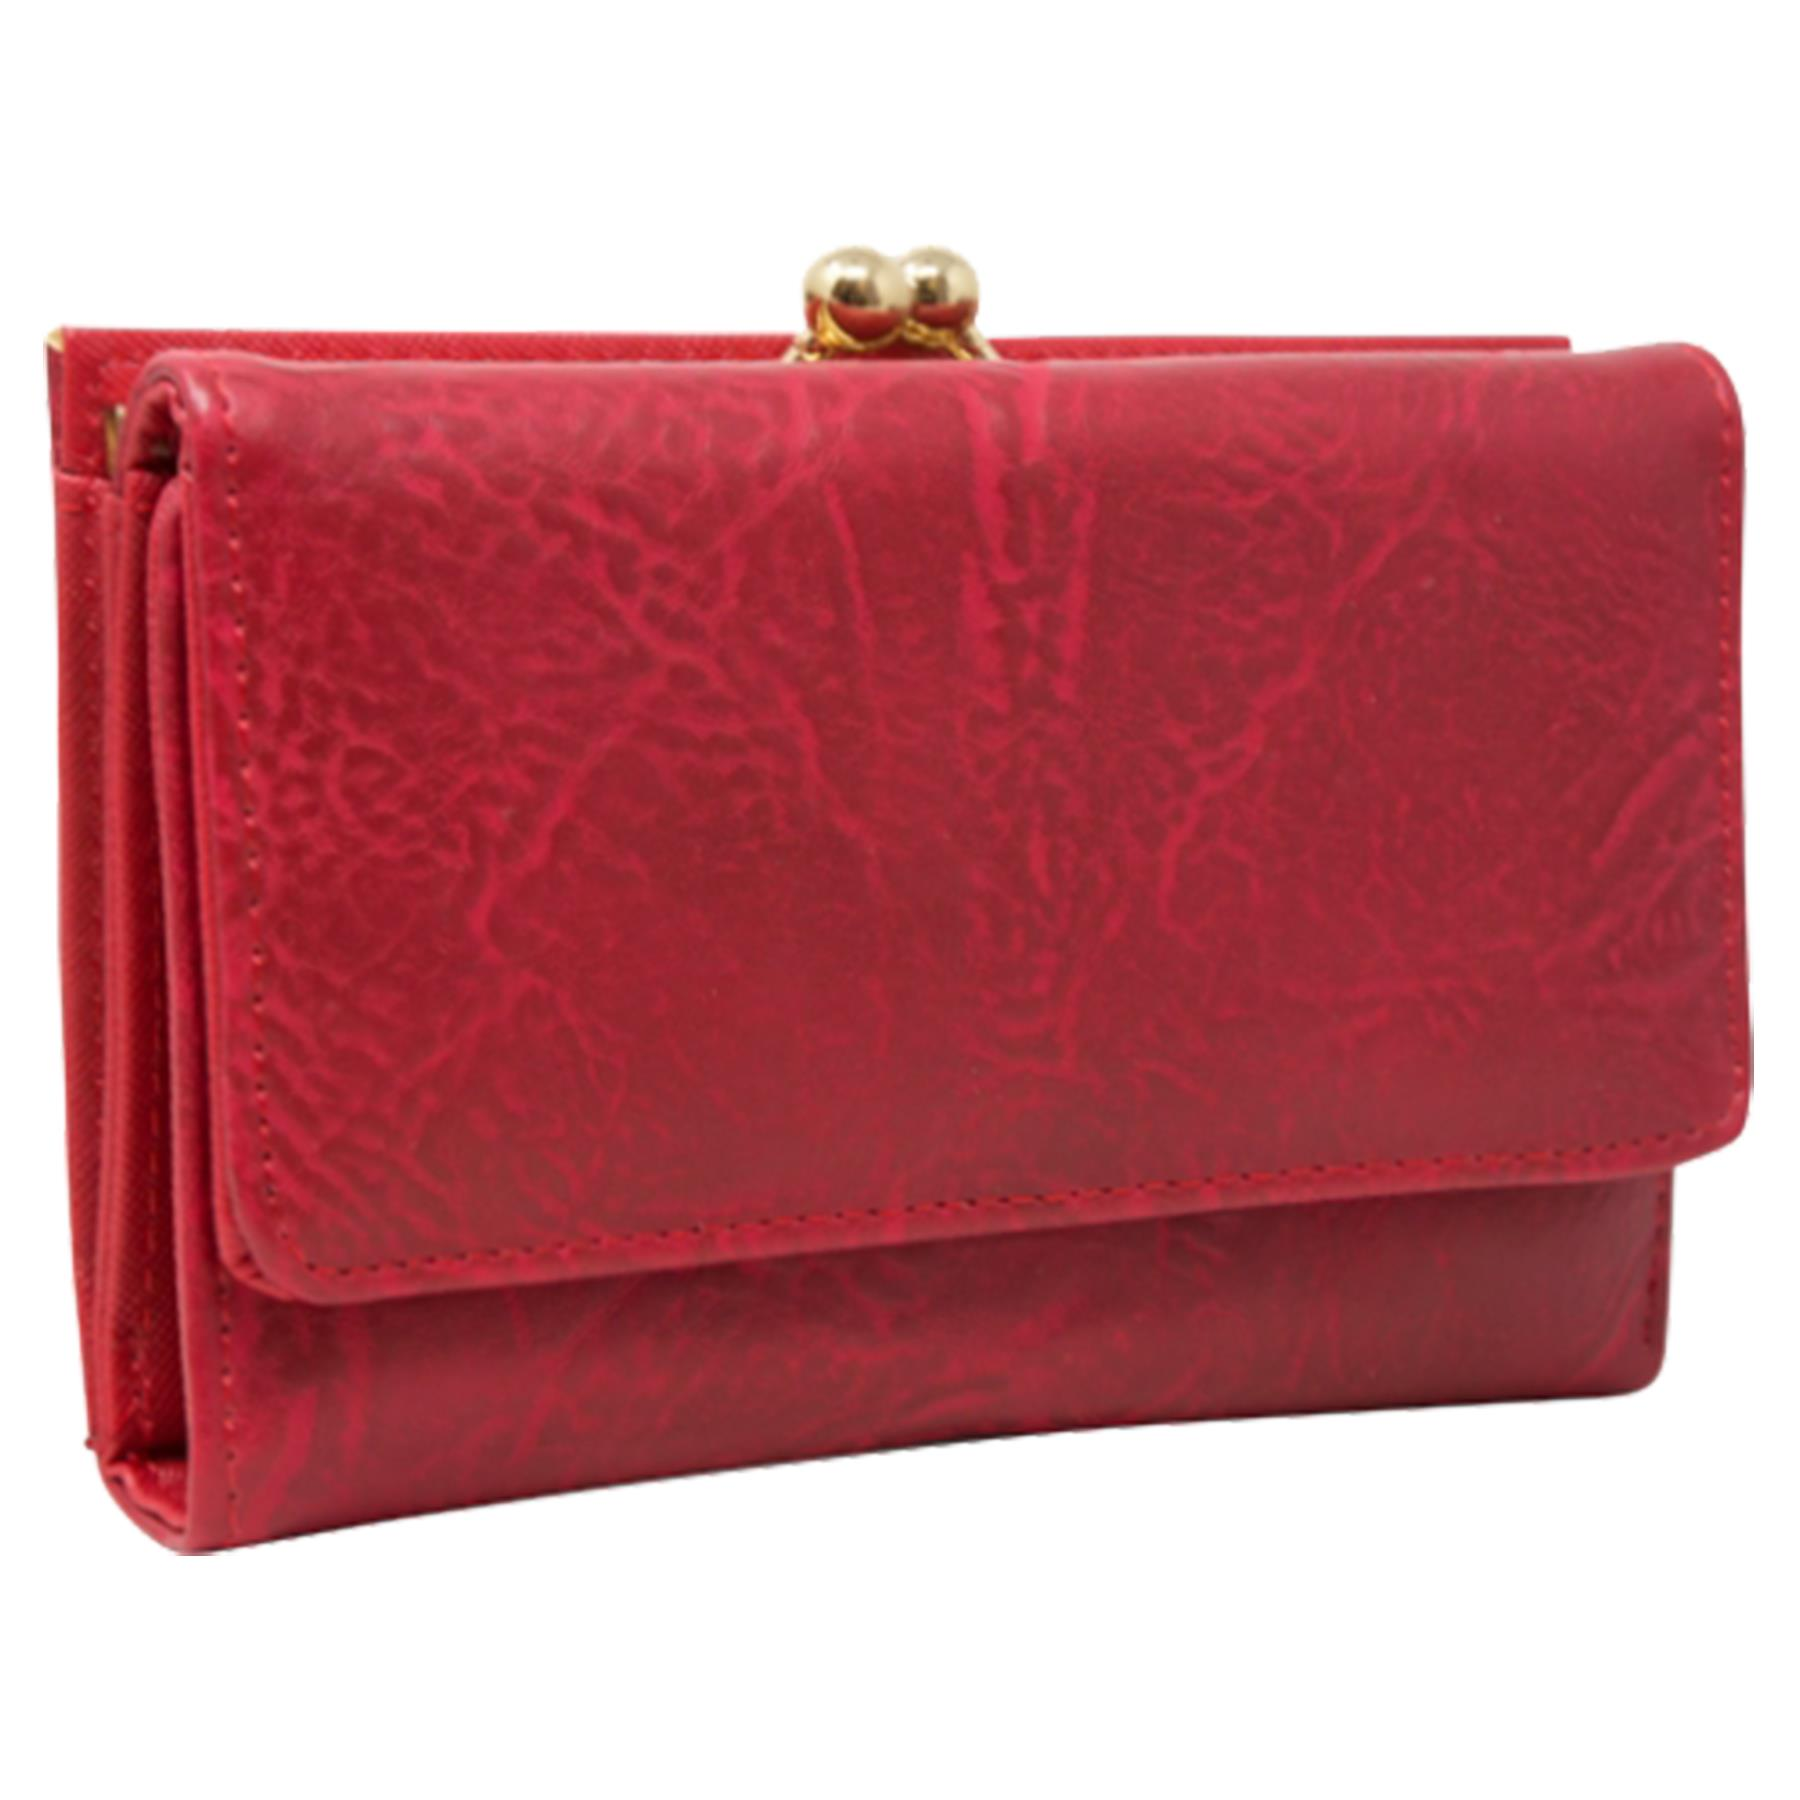 New-Synthetic-Leather-Kiss-Lock-Compartment-Ladies-Casual-Wallet-Purse thumbnail 23